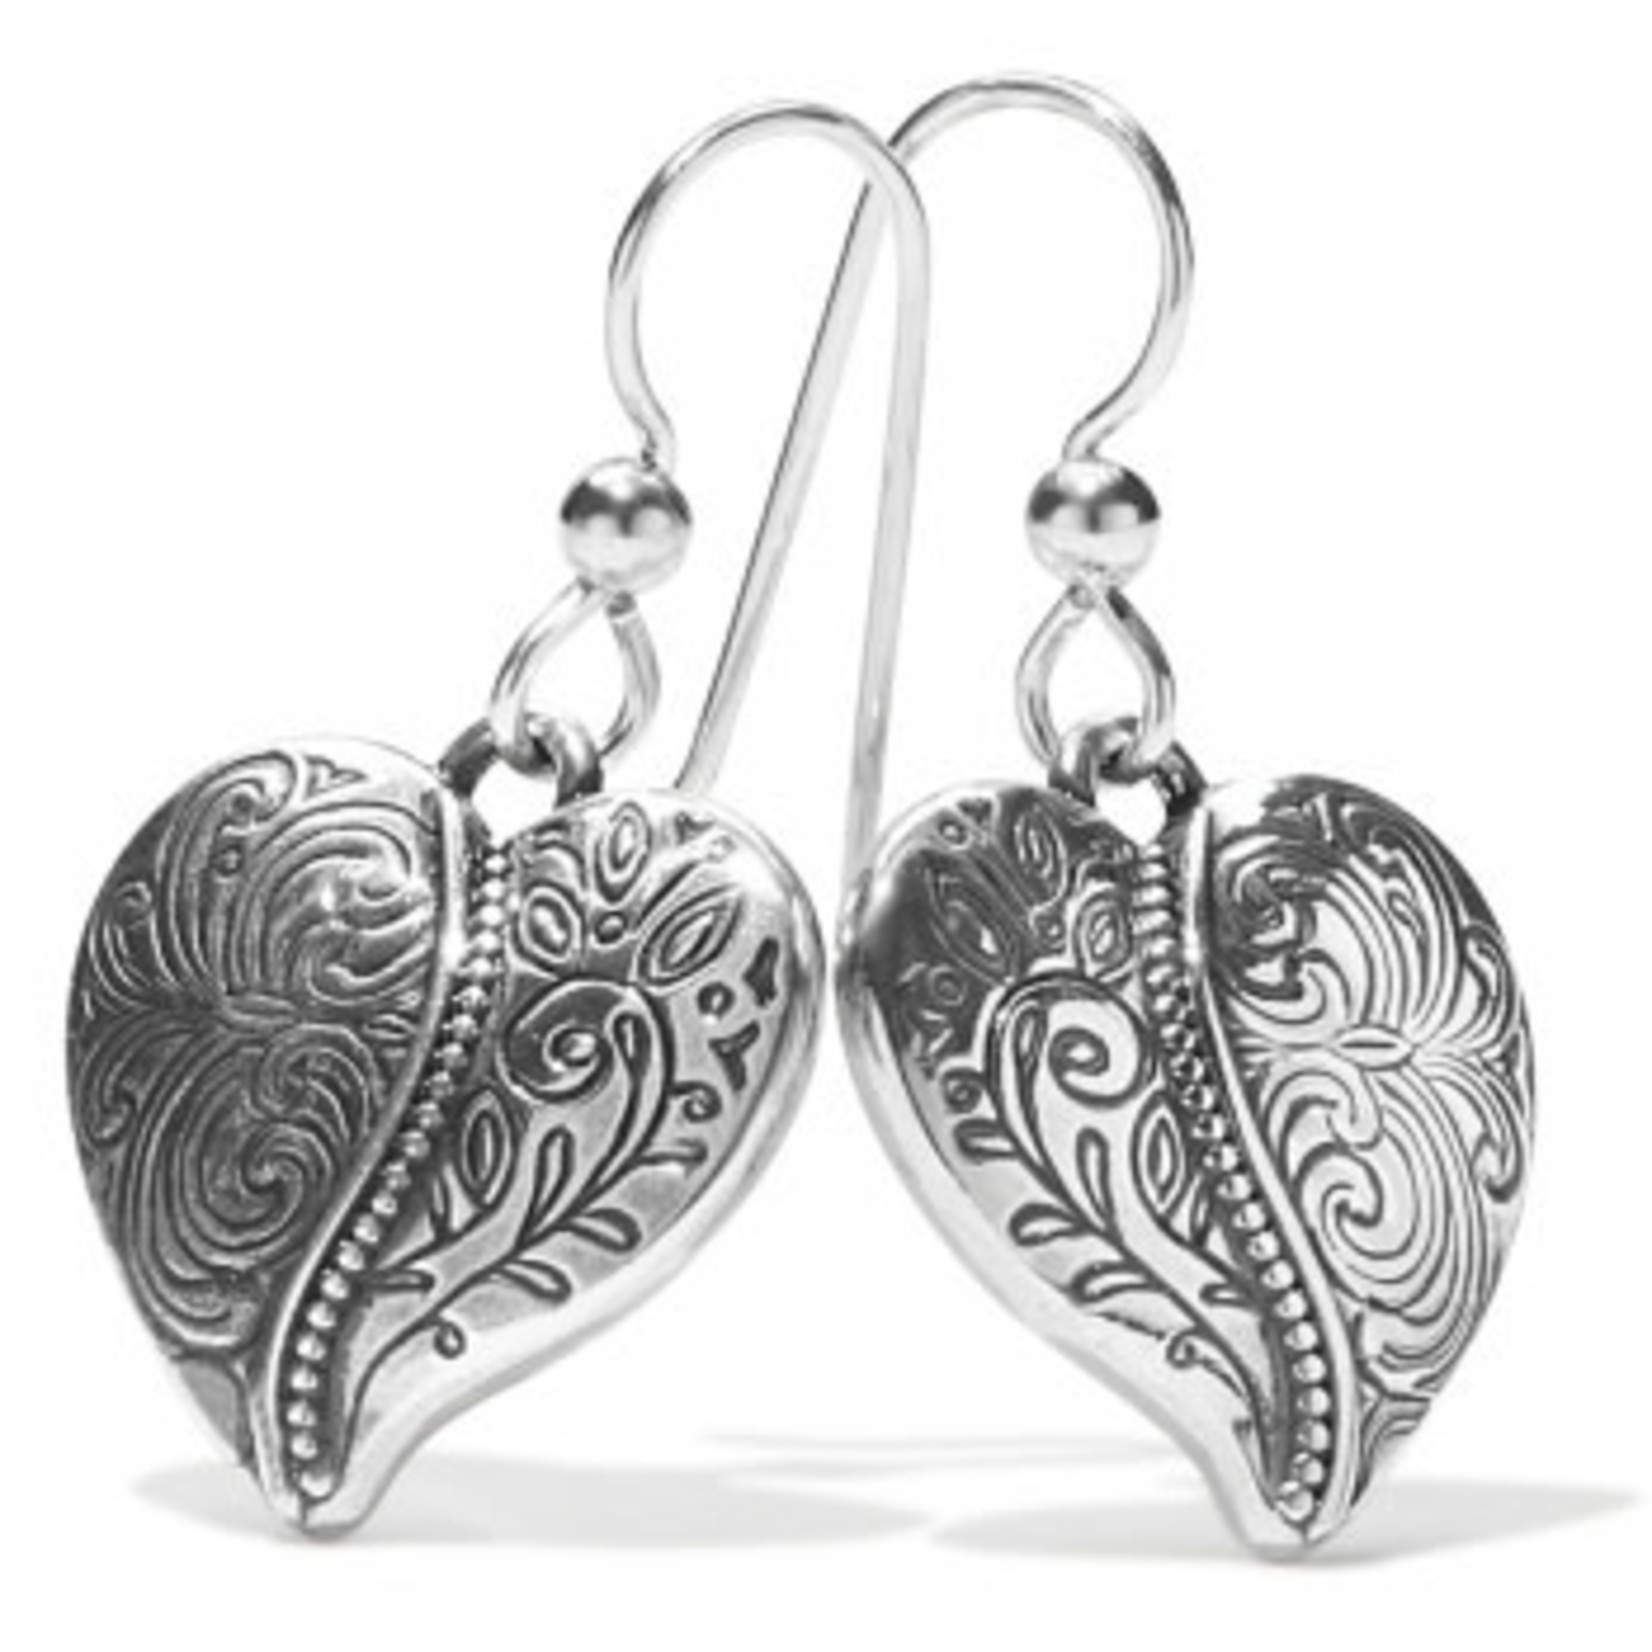 Brighton Ornate Heart French Wire Earrings Silver OS